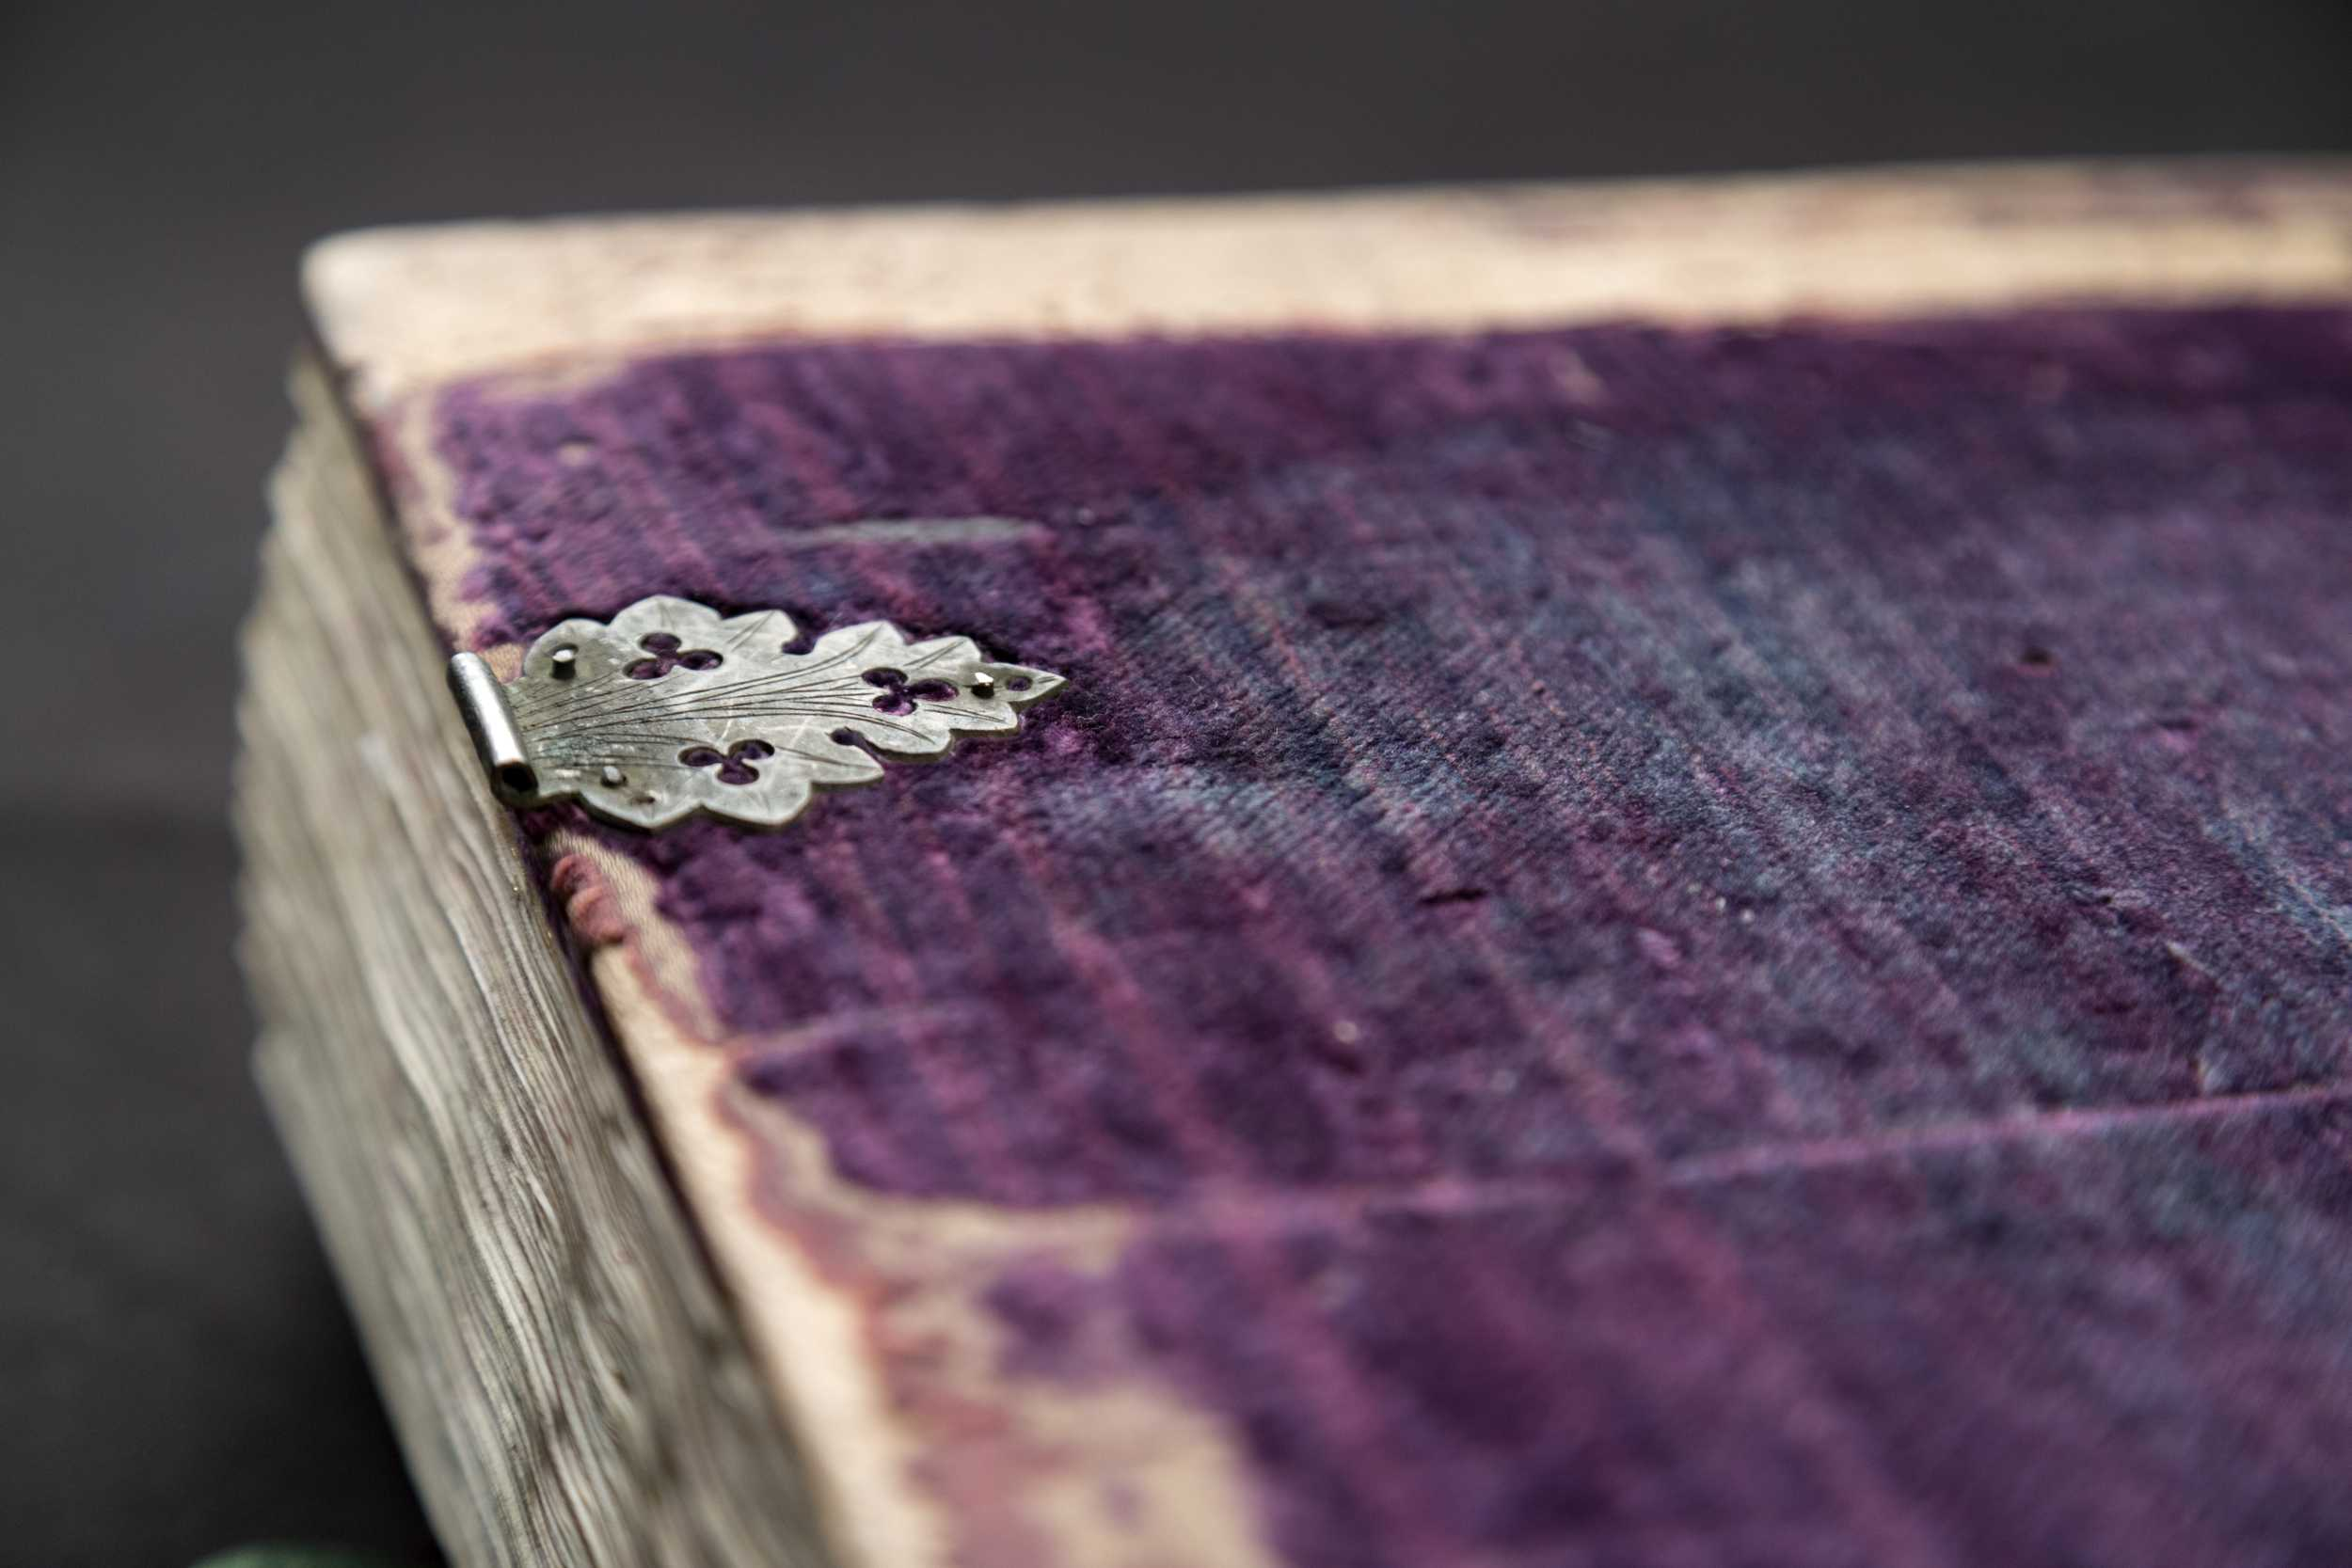 Purple velvet binding with leaf-shaped copper clasps was the characteristic binding type of corvinas that had been bound in Buda. Budapest, NSZL, OSZK Cod. Lat. 241.